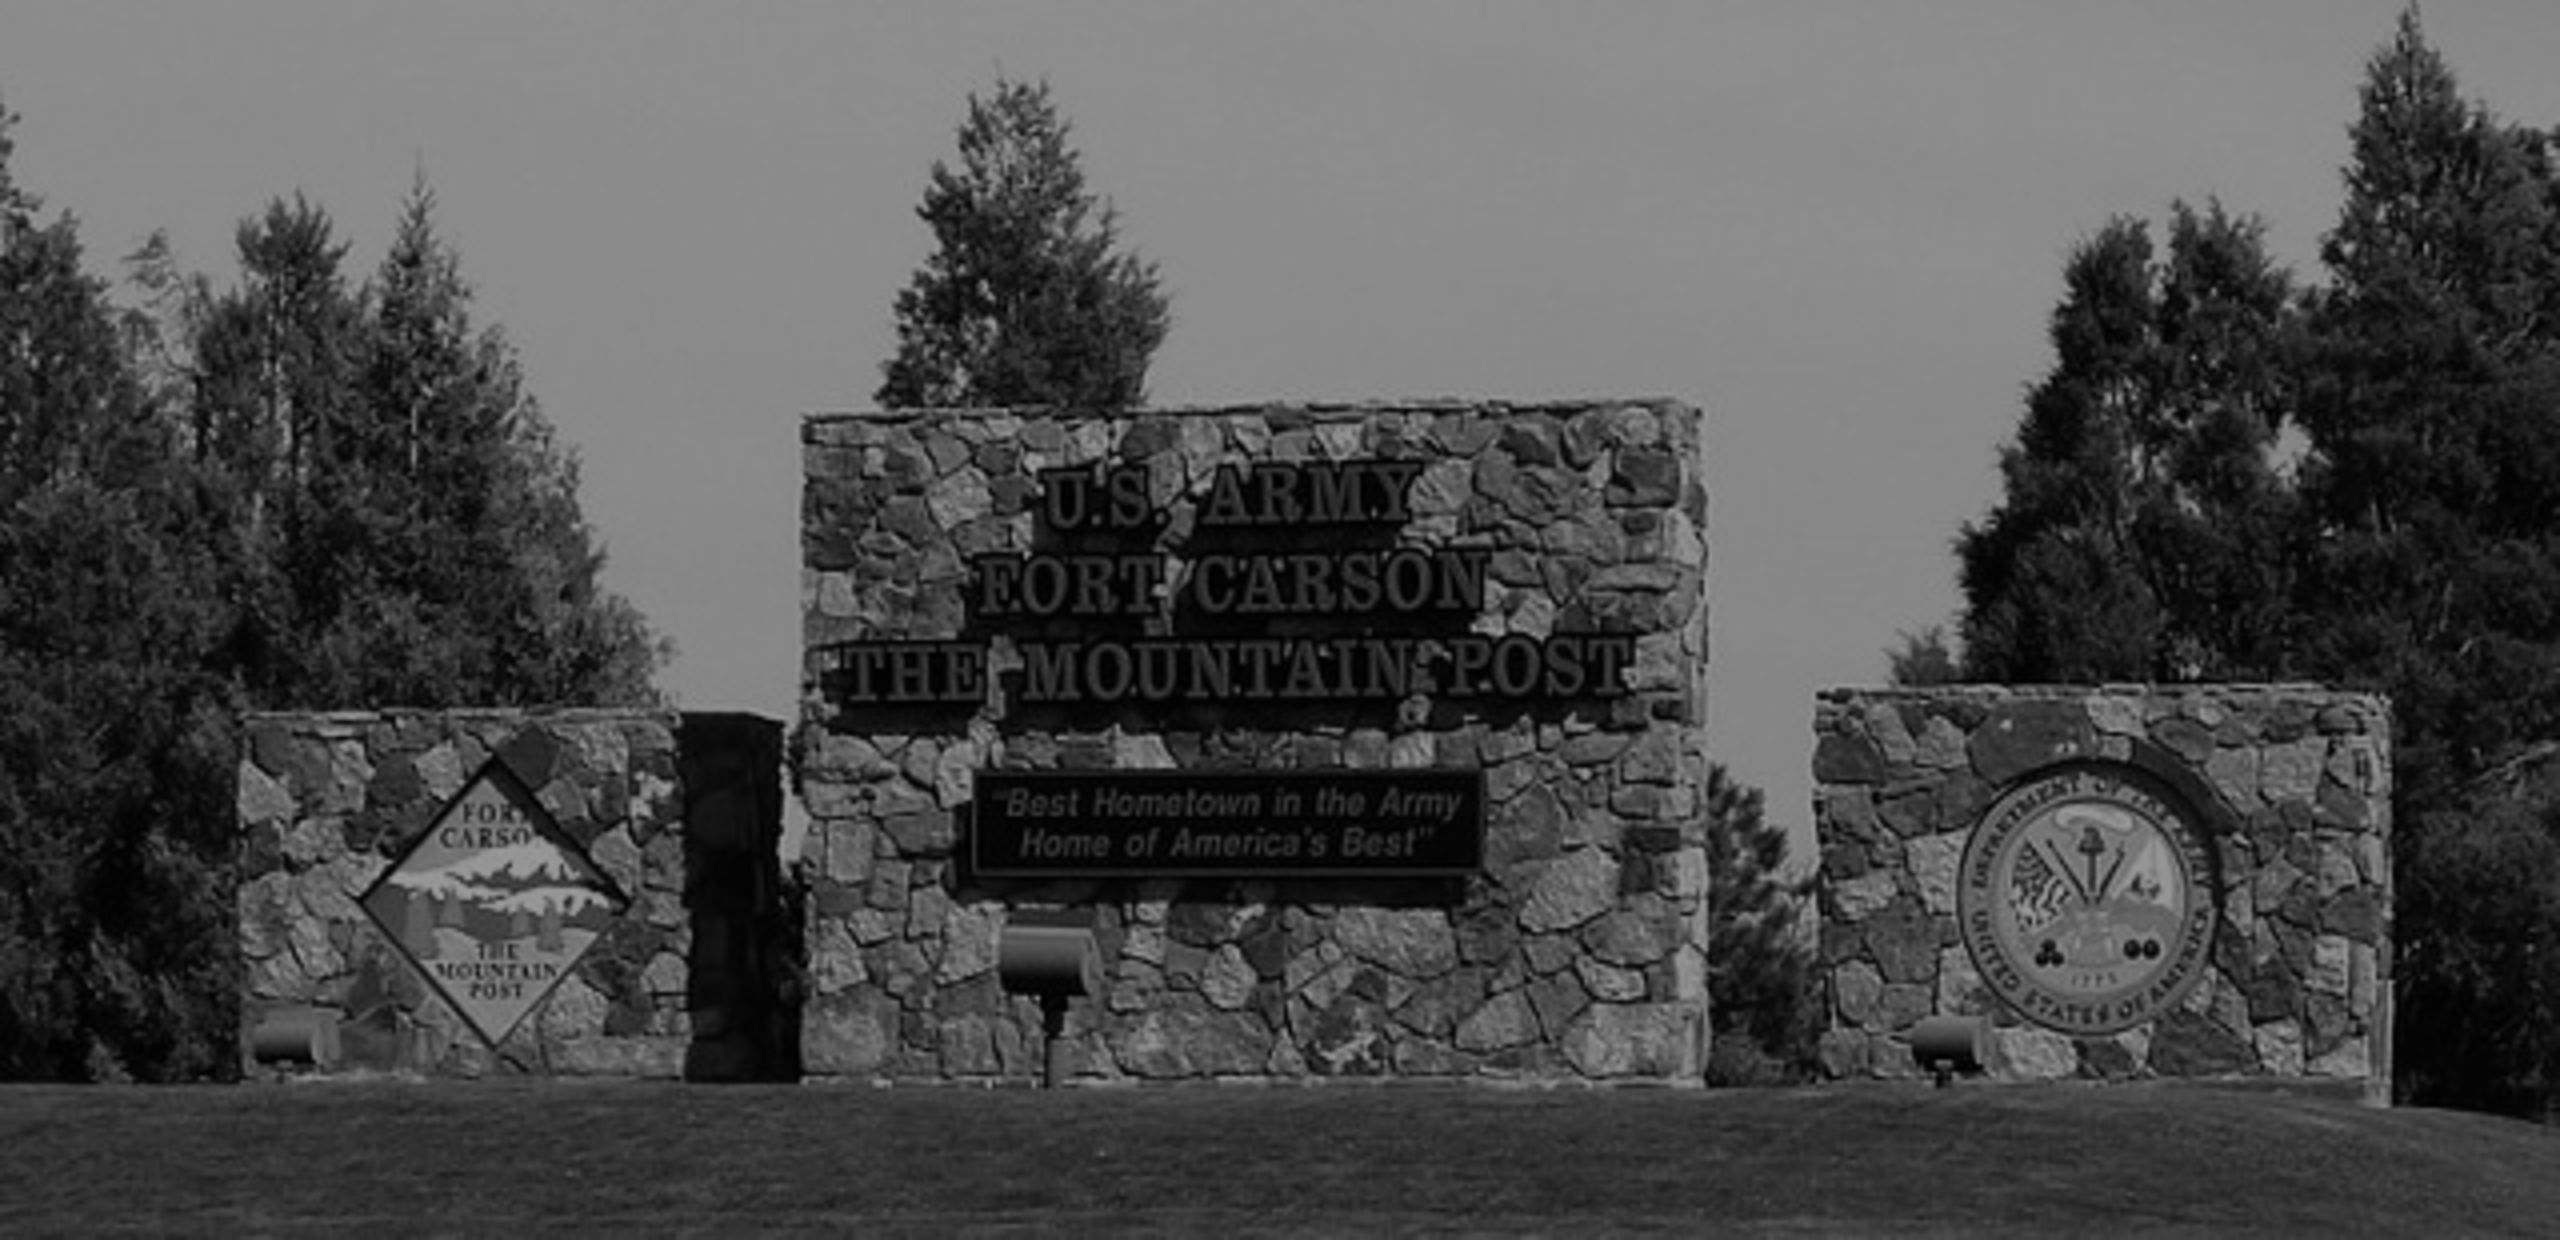 Fort Carson Army Post – Colorado Springs 80913